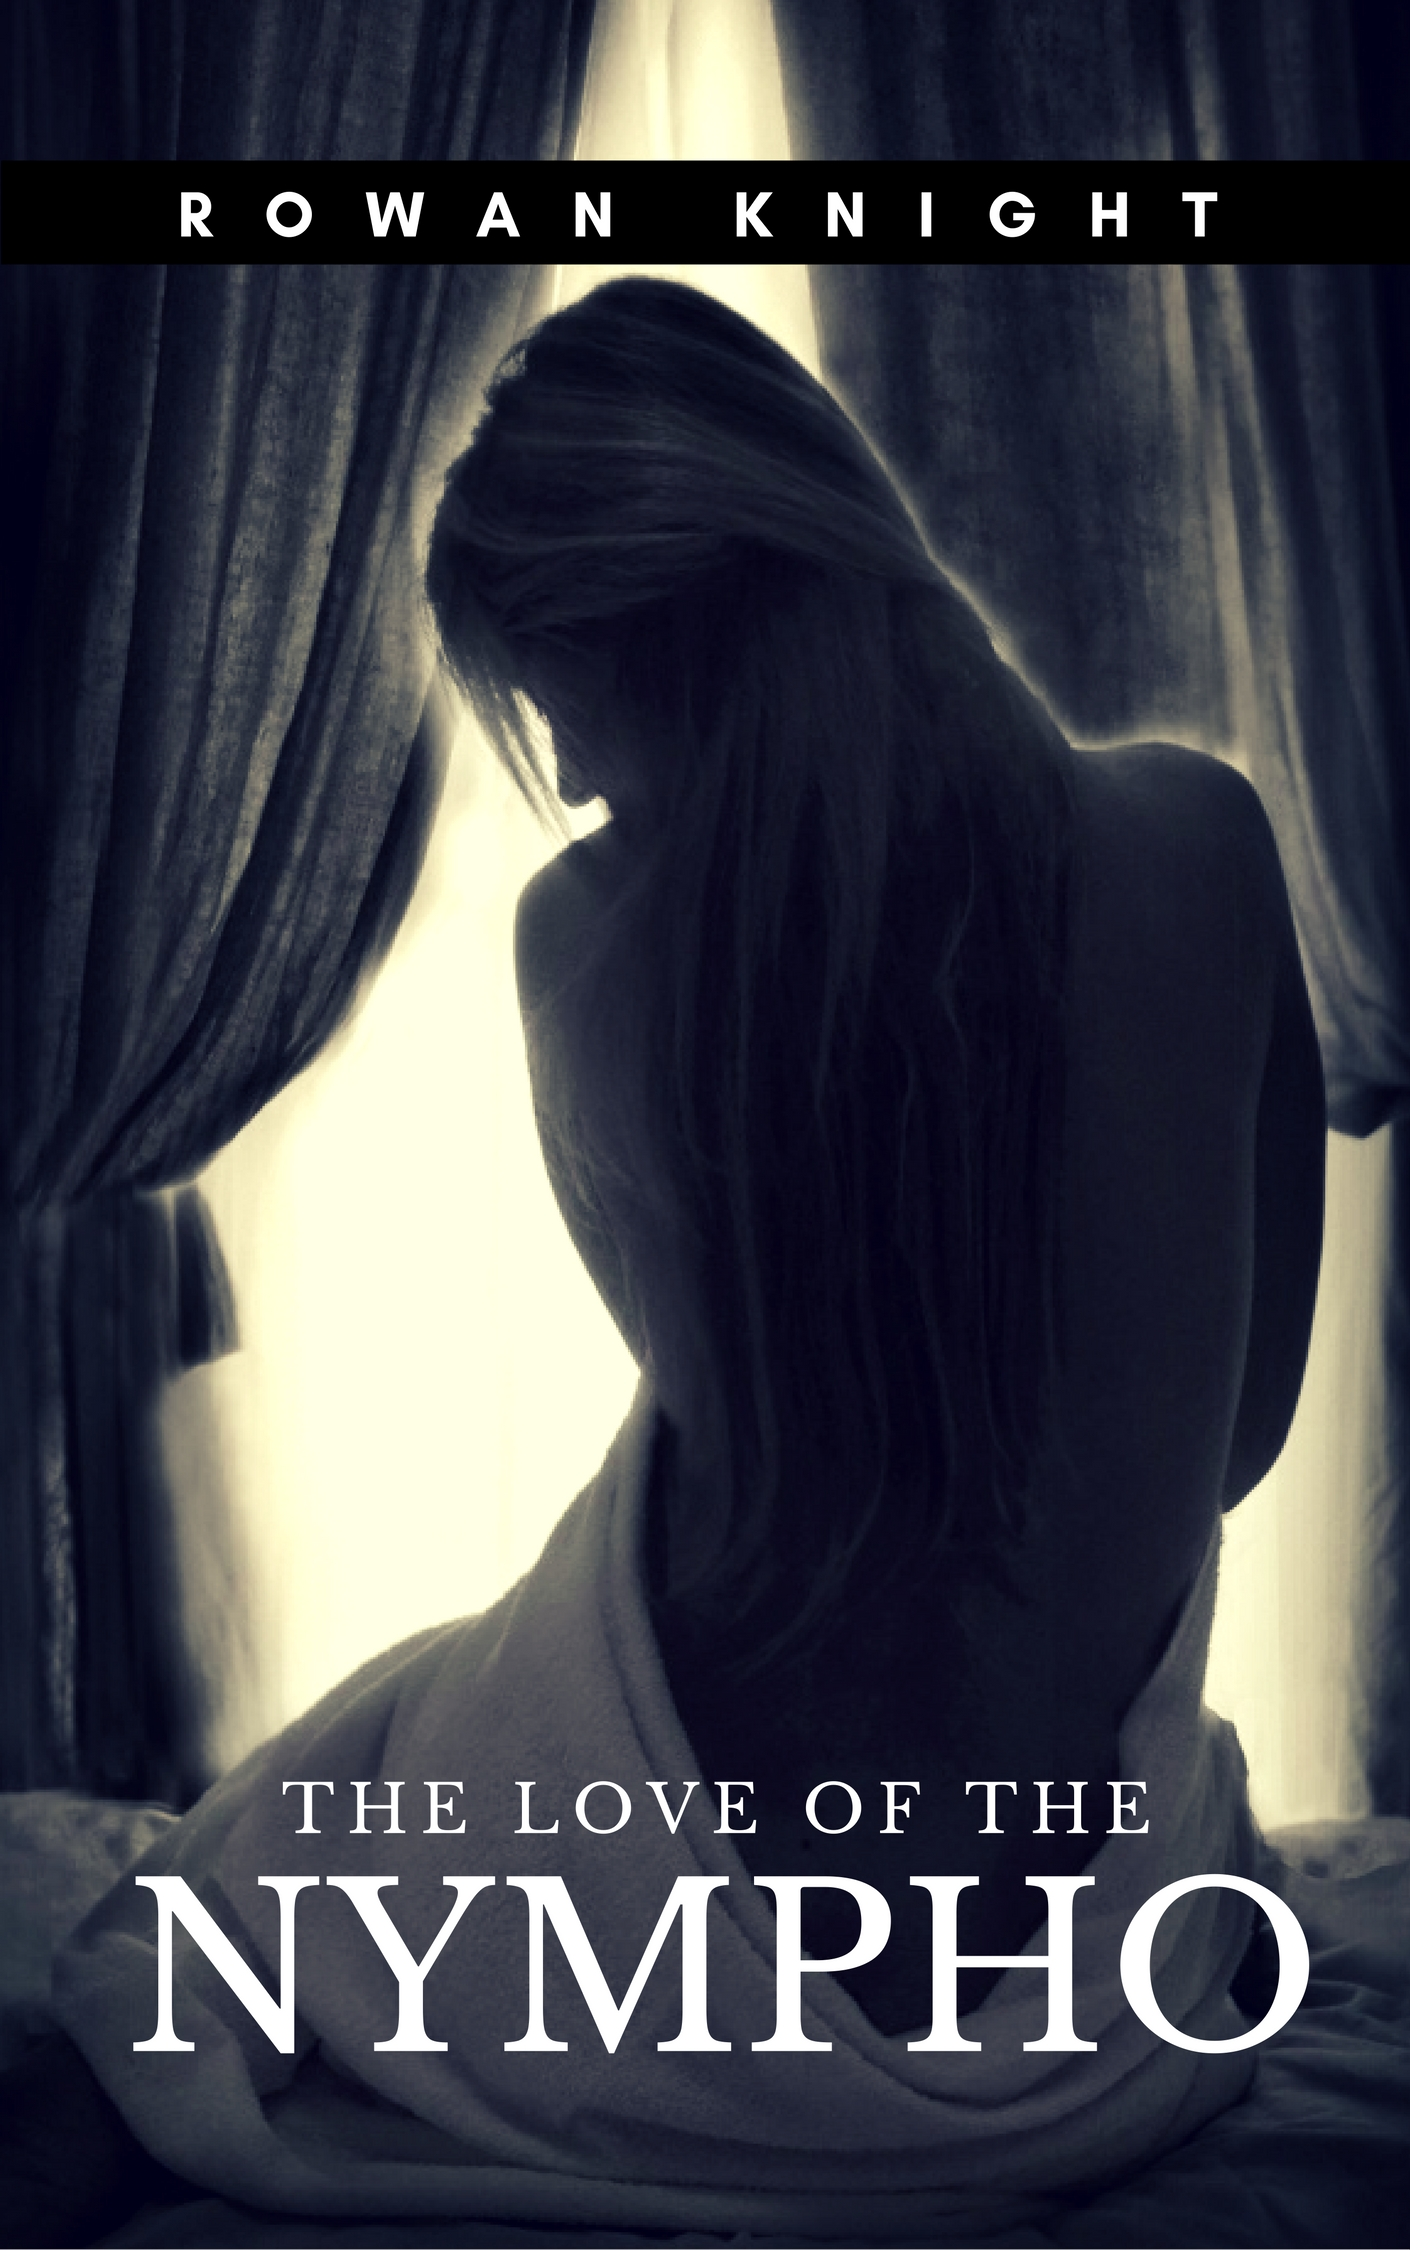 The Love of the Nympho, an Ebook by Rowan Knight